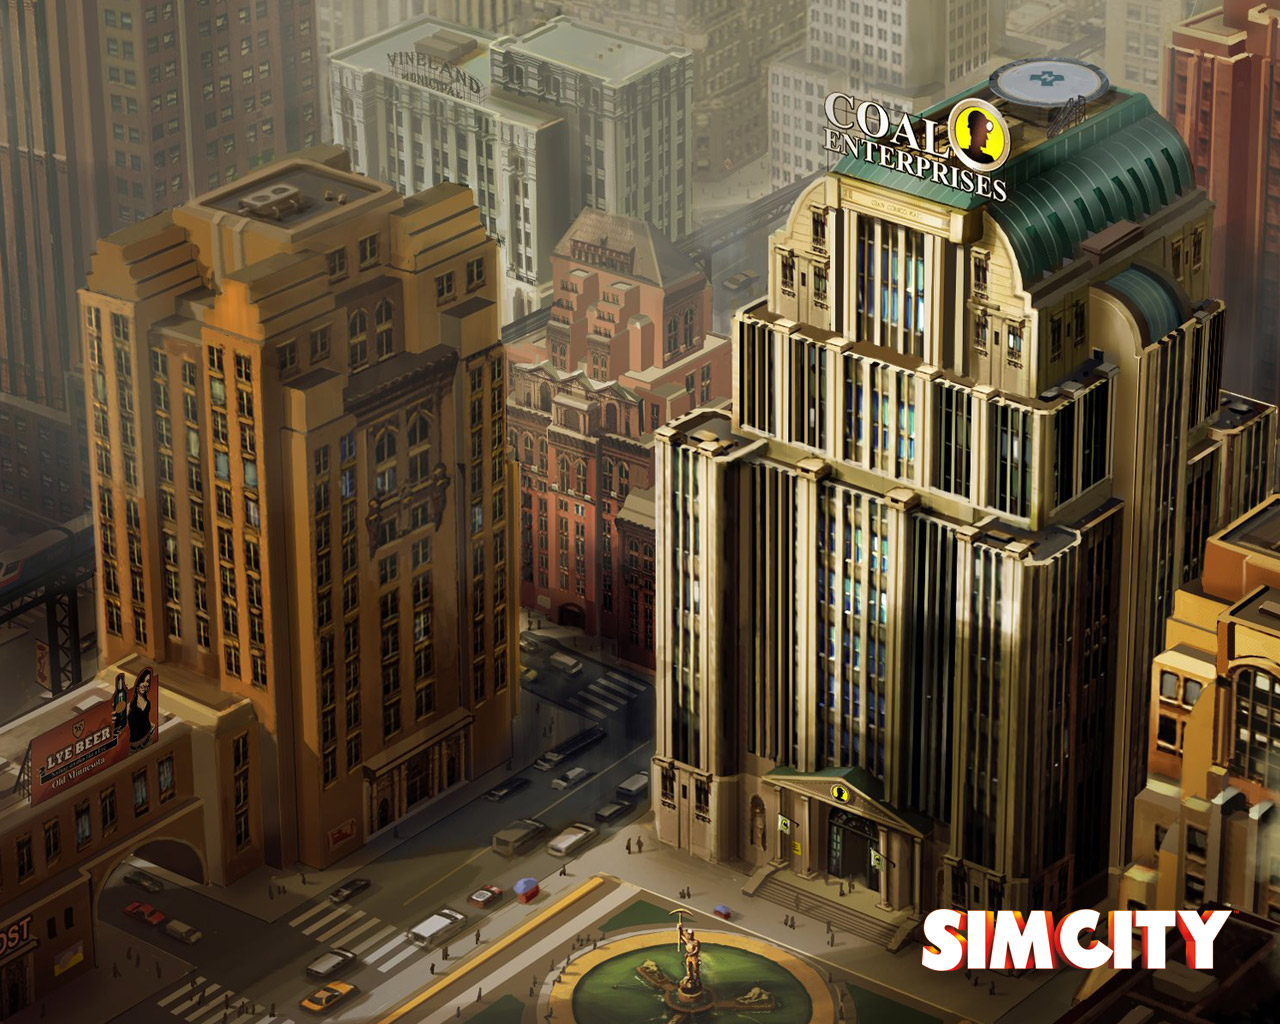 Free SimCity Wallpaper in 1280x1024